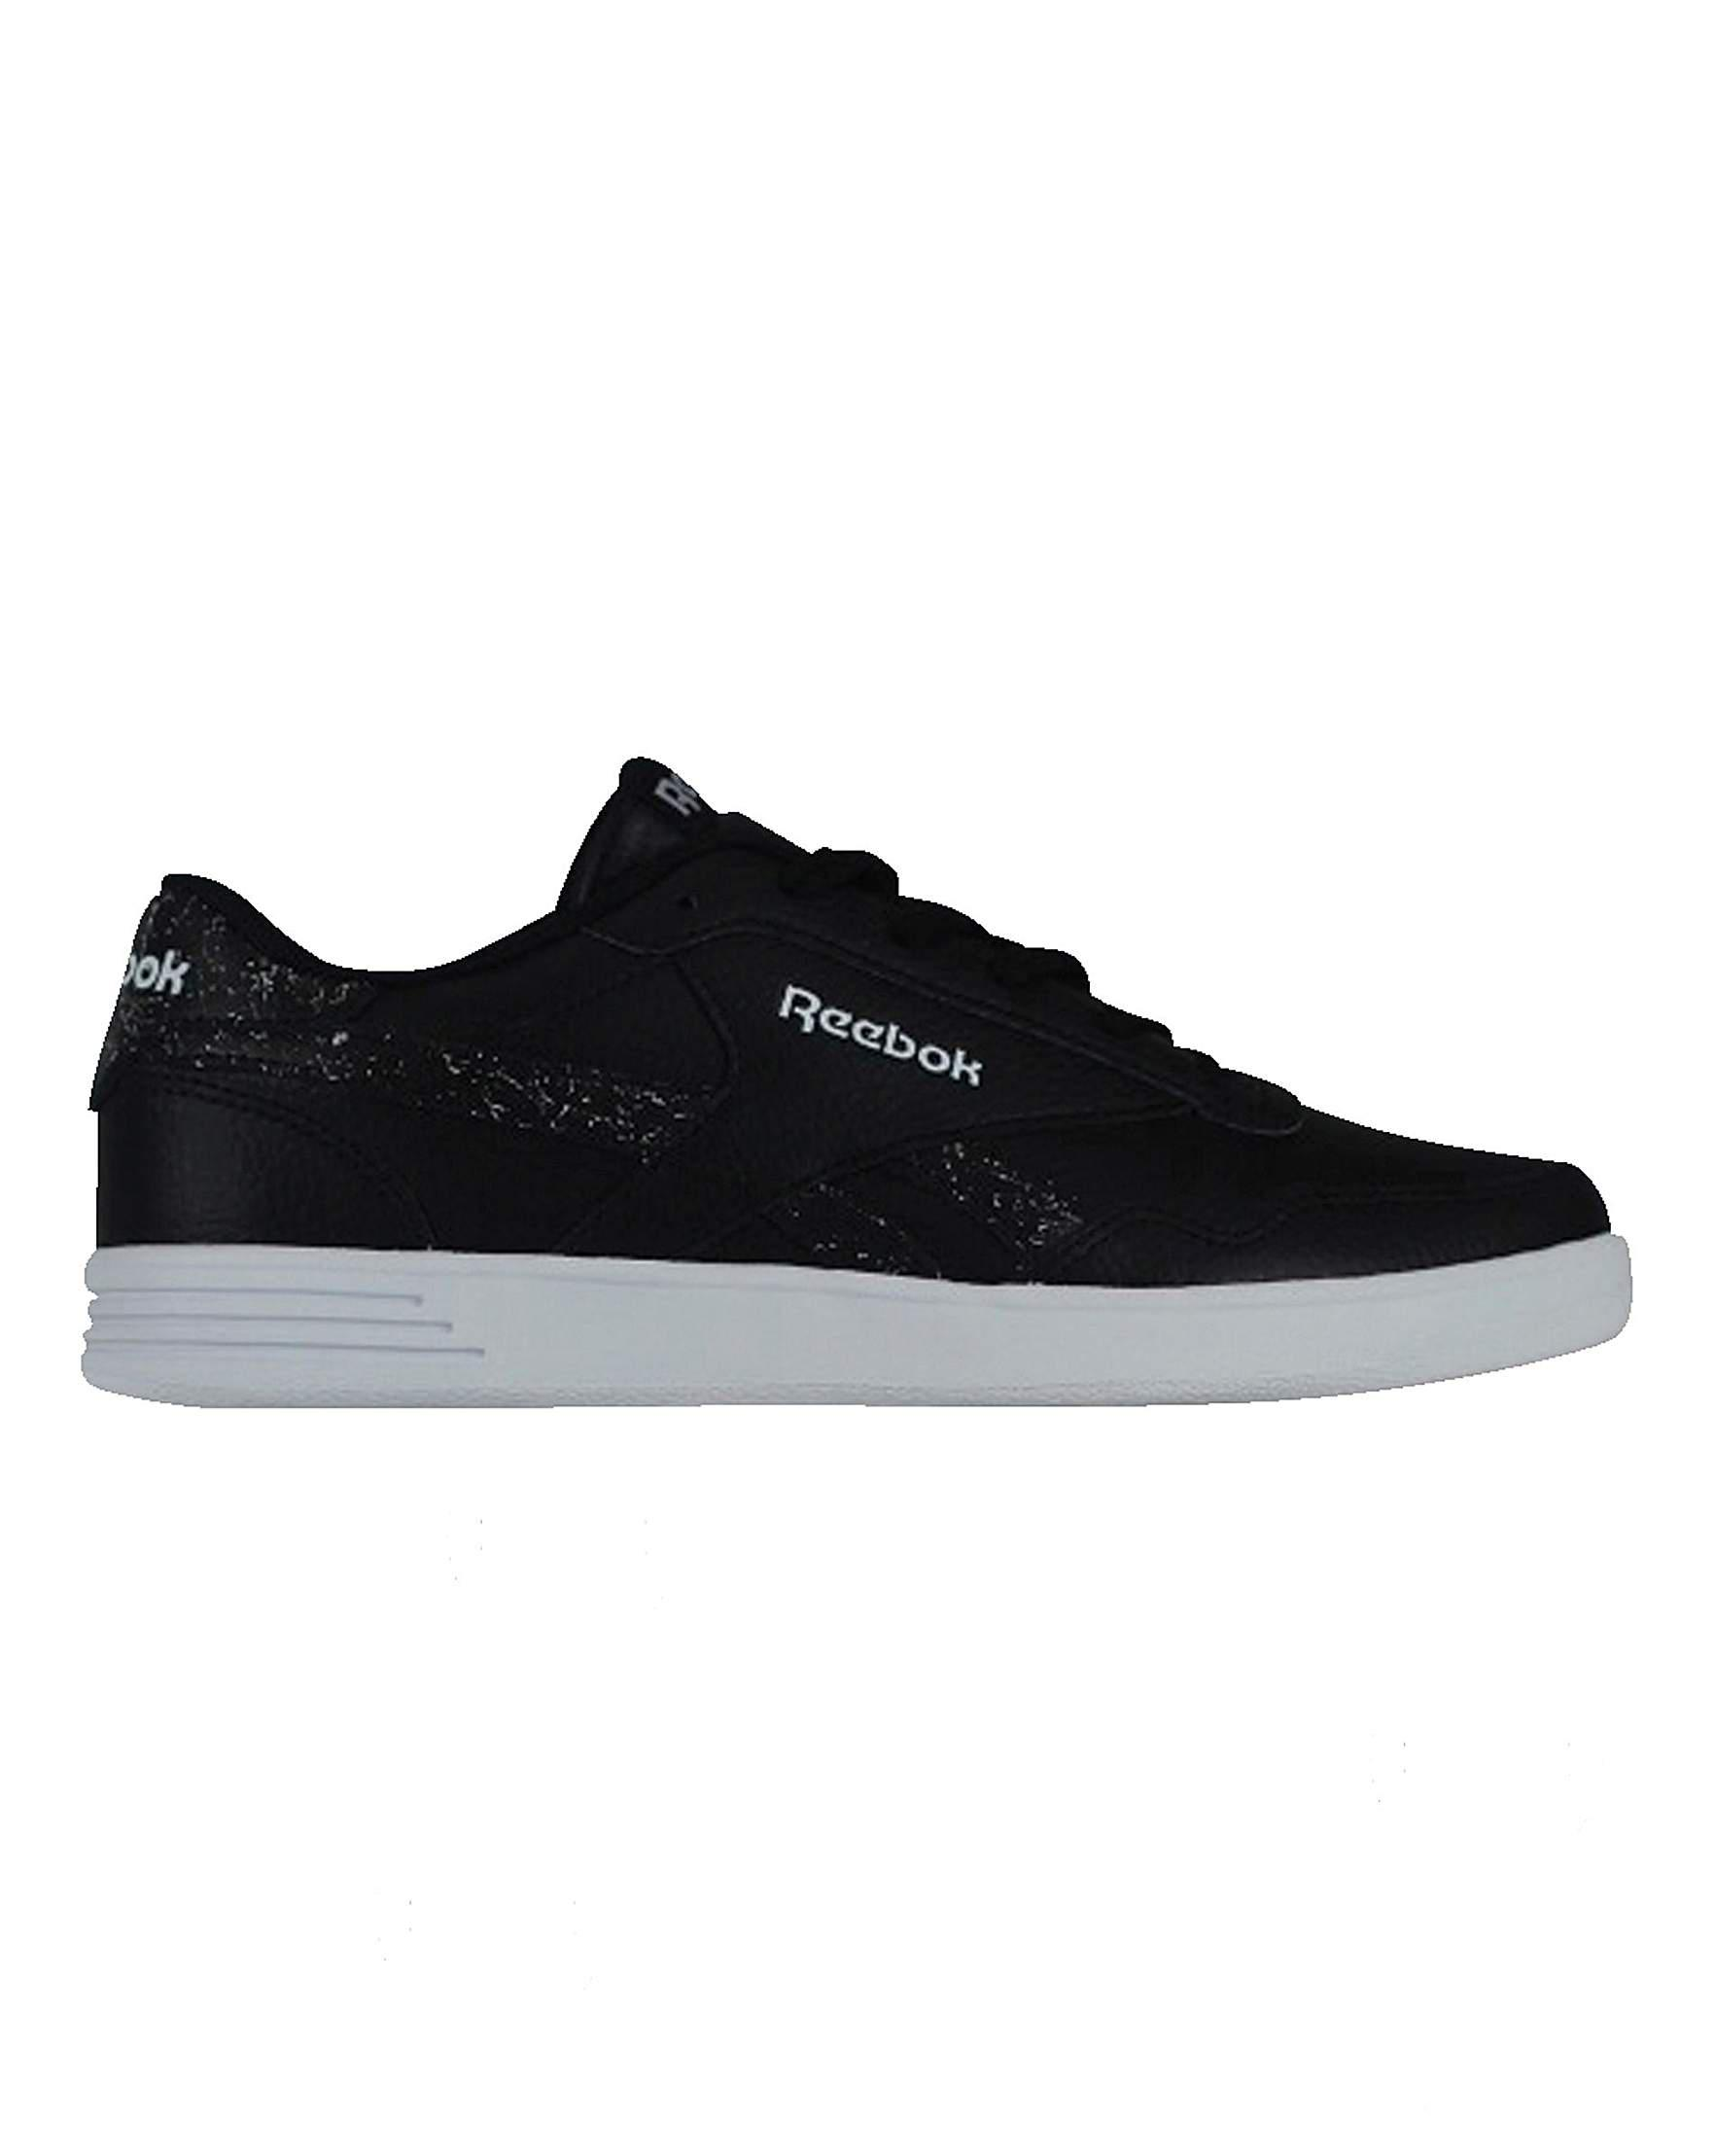 Reebok Royal Technique Trainers in Black - Lyst c748f6bca